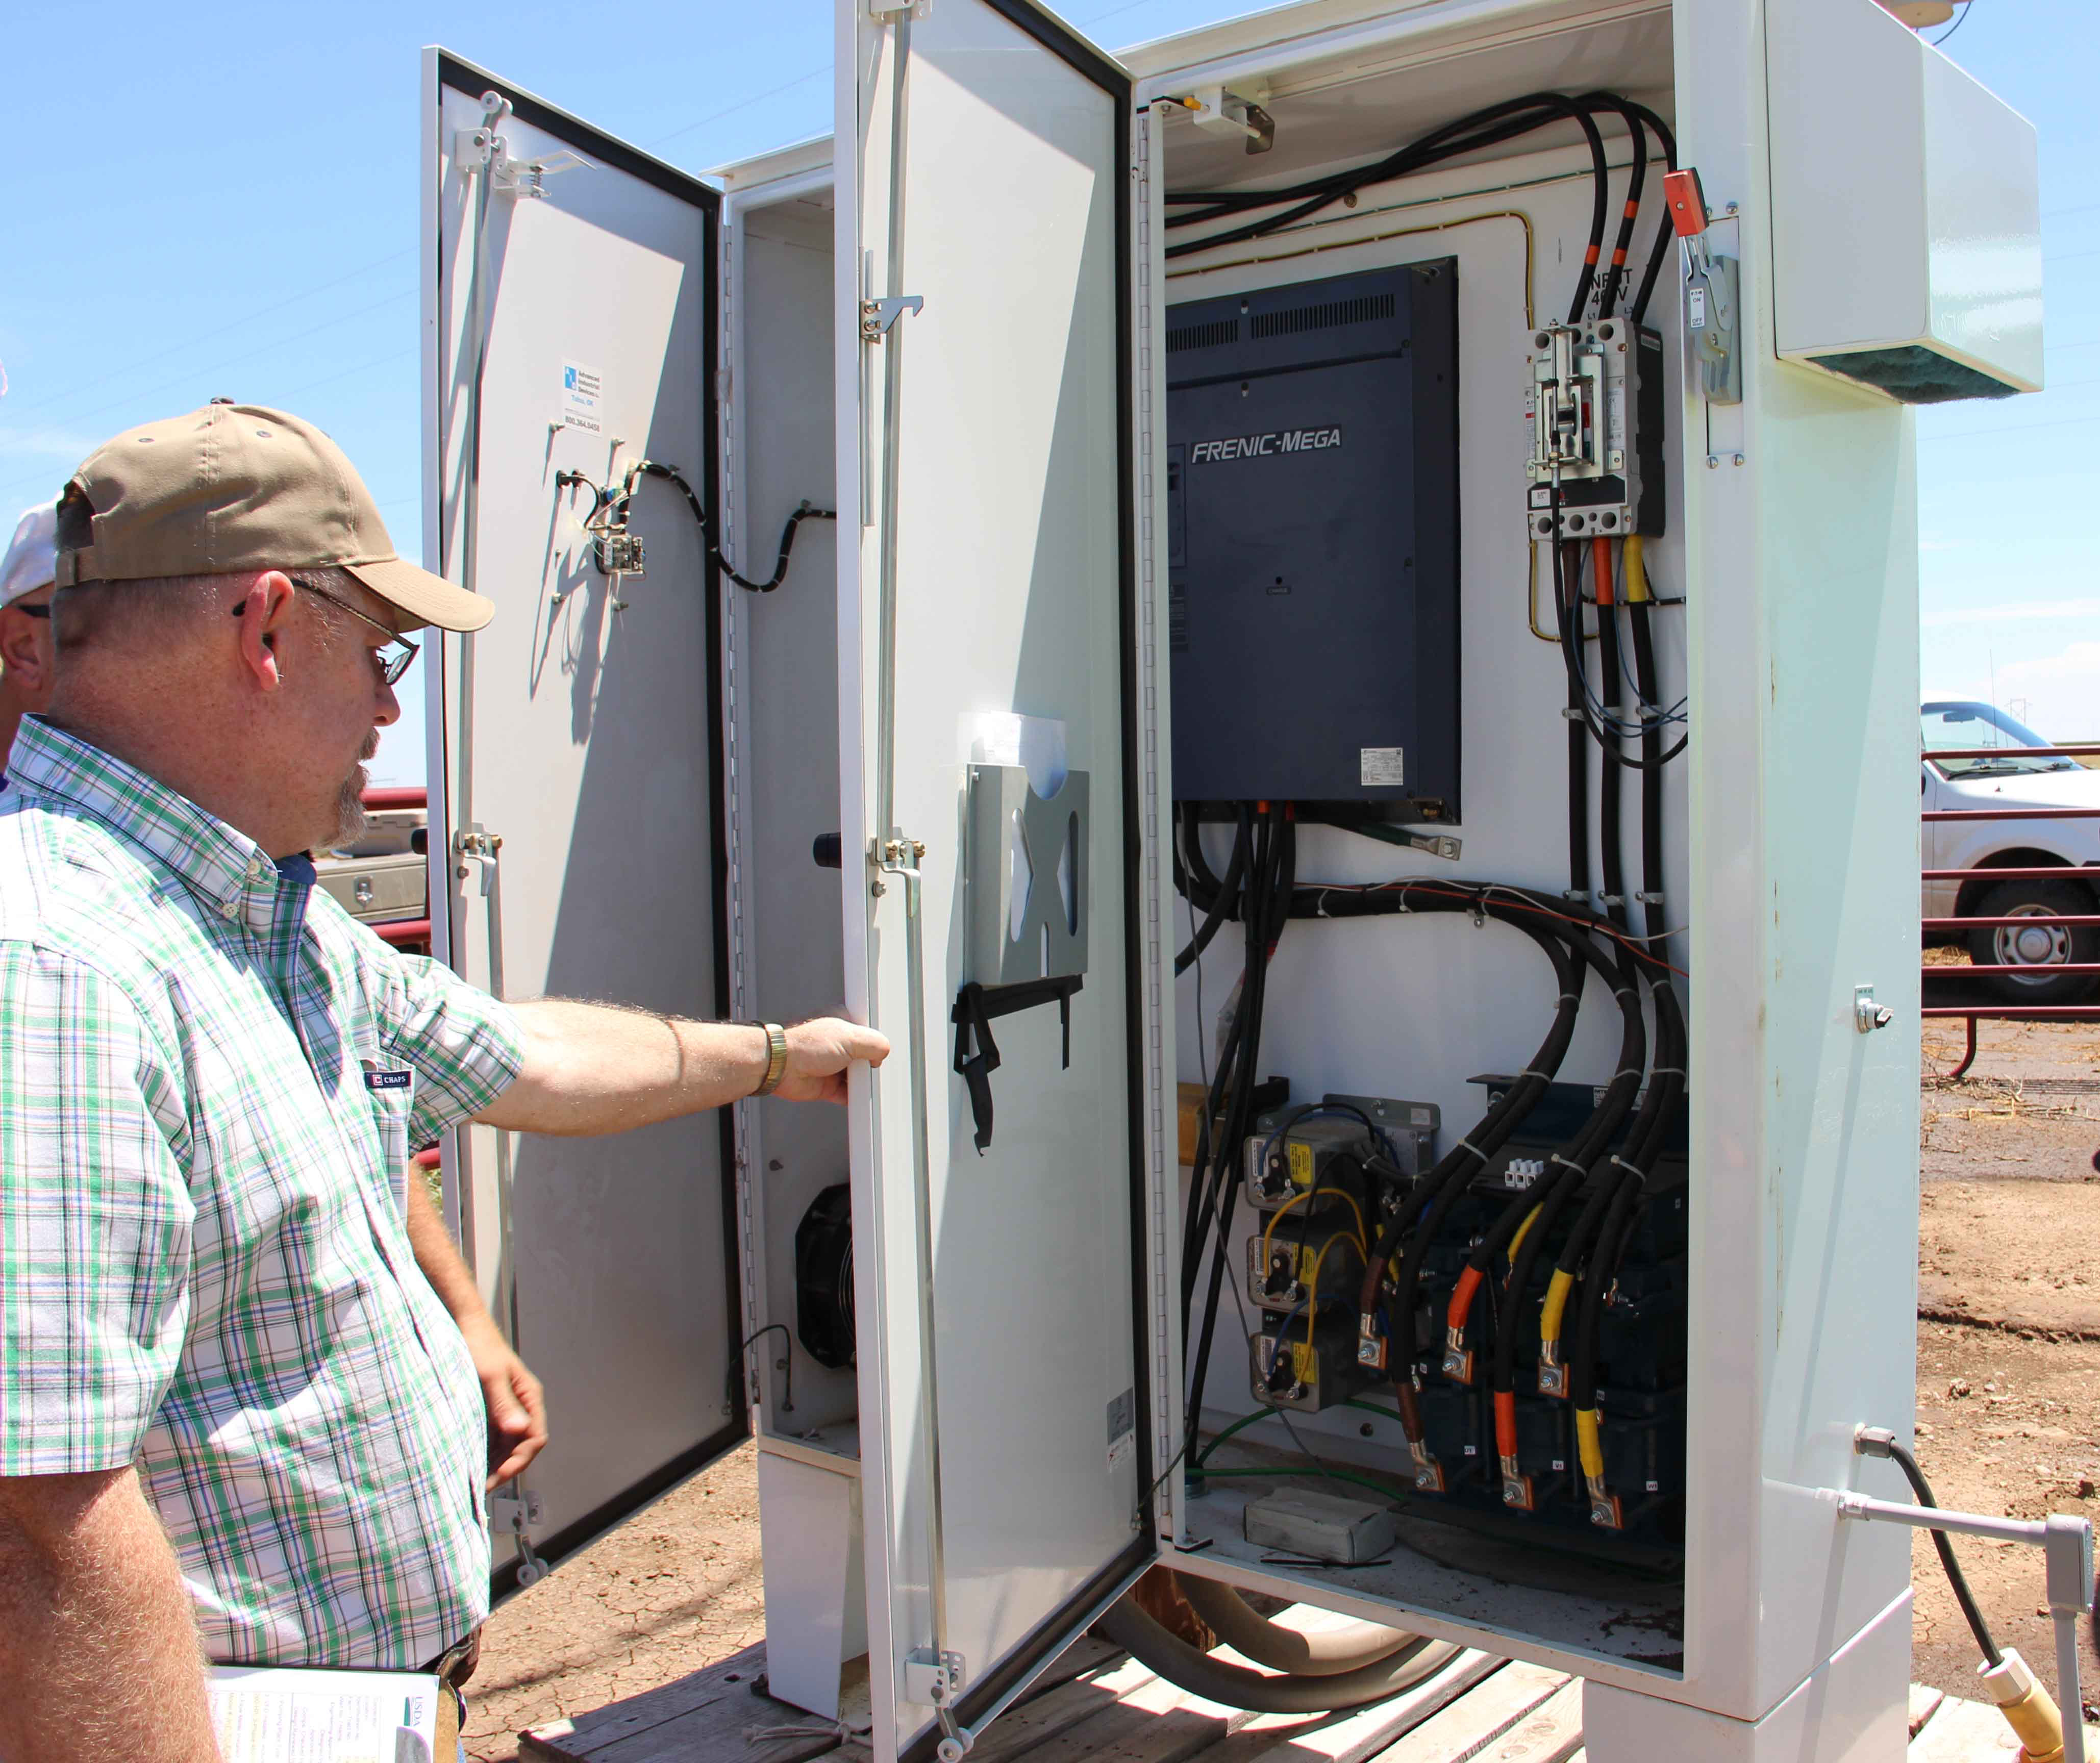 NRCS is Driving Energy Savings to Farmers with VFDs